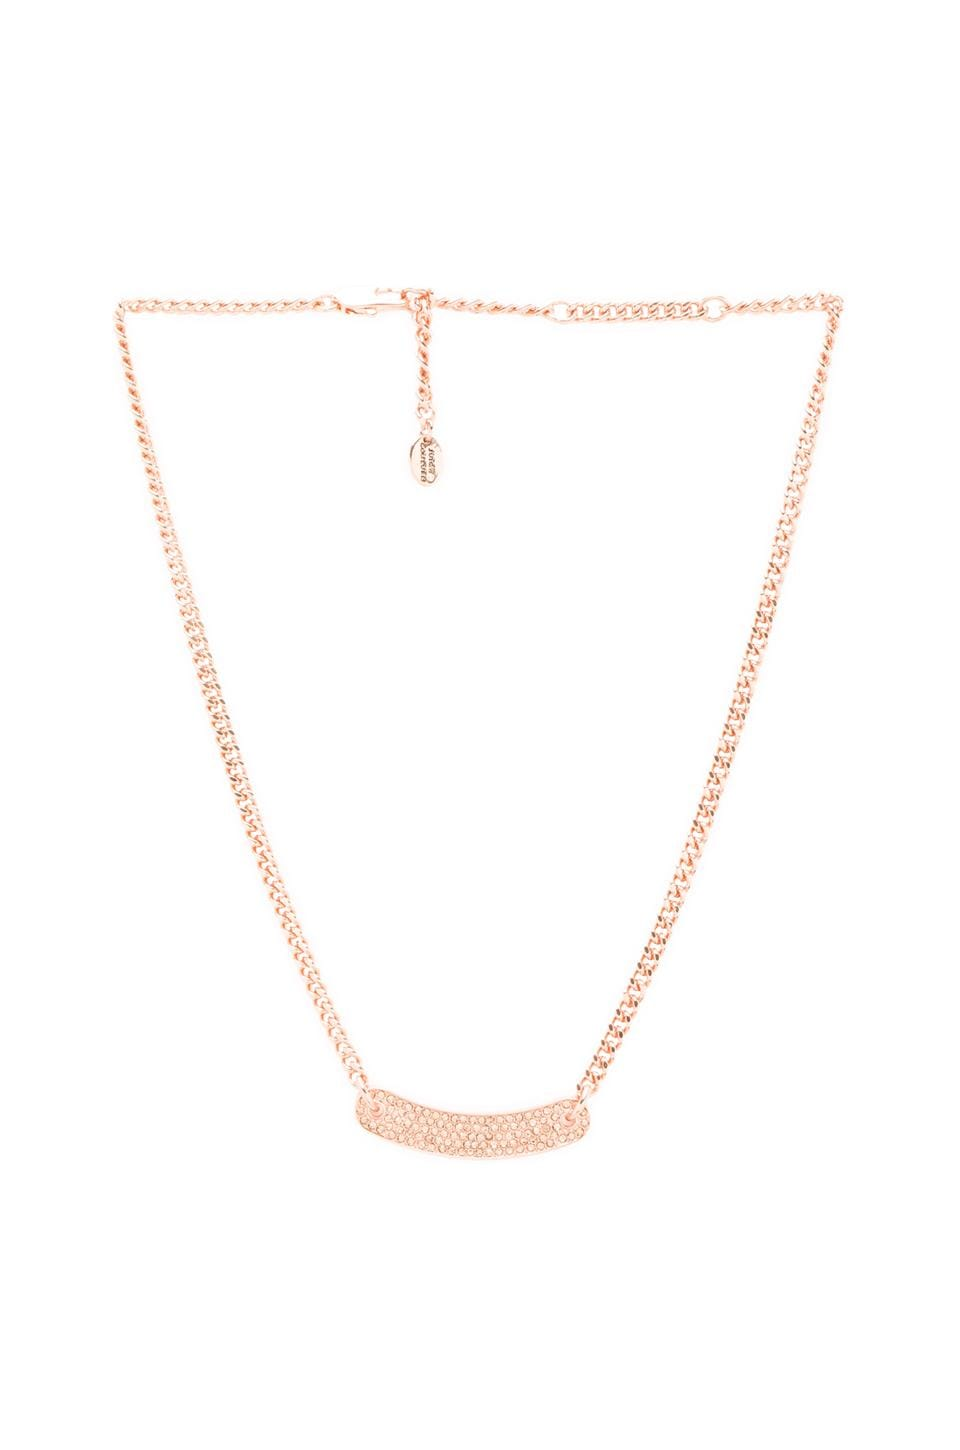 Juicy Couture Pave ID Necklace in Rose Gold